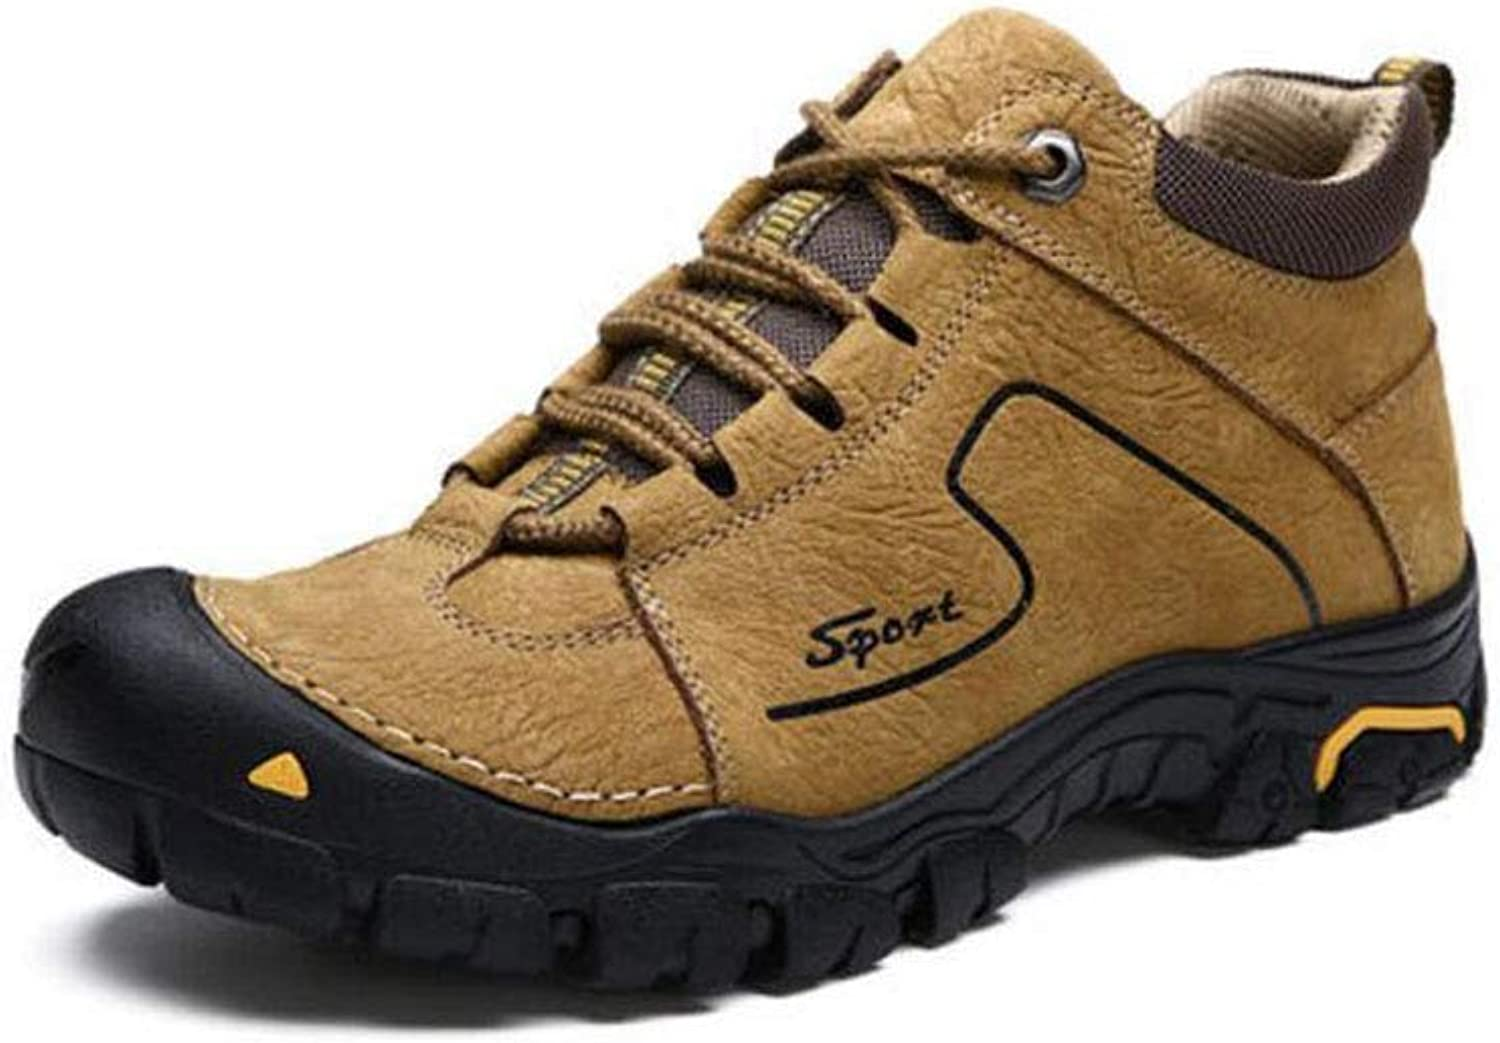 FH Men's Outdoor Hiking shoes Fashion Casual Wear Comfortable Warm Snow Boots